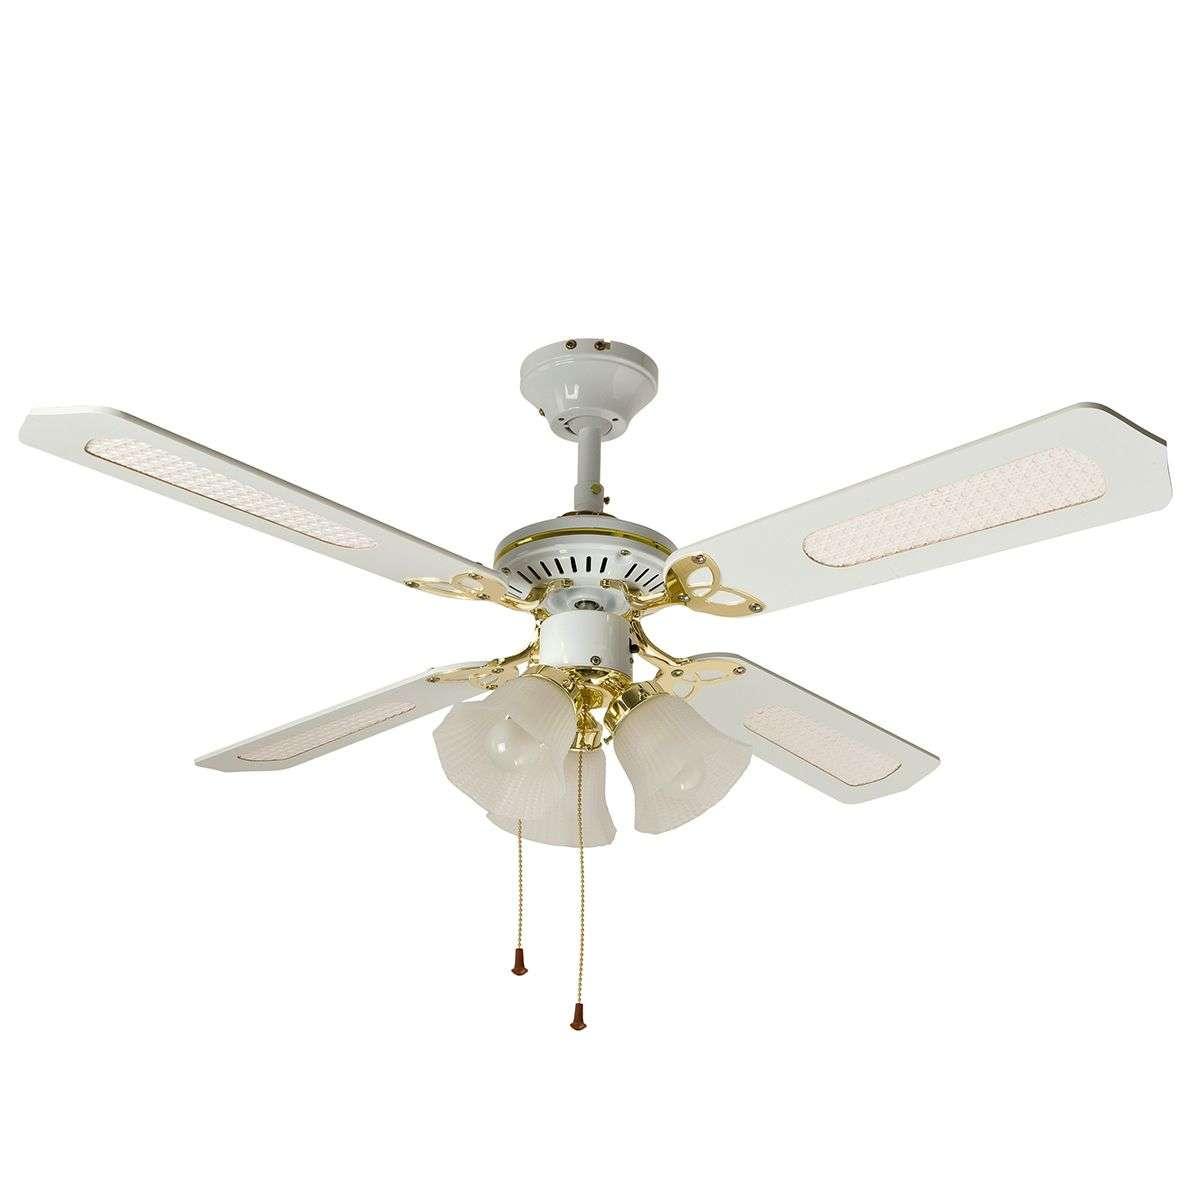 Calice ceiling fan 3 bulb white lights calice ceiling fan 3 bulb white aloadofball Choice Image